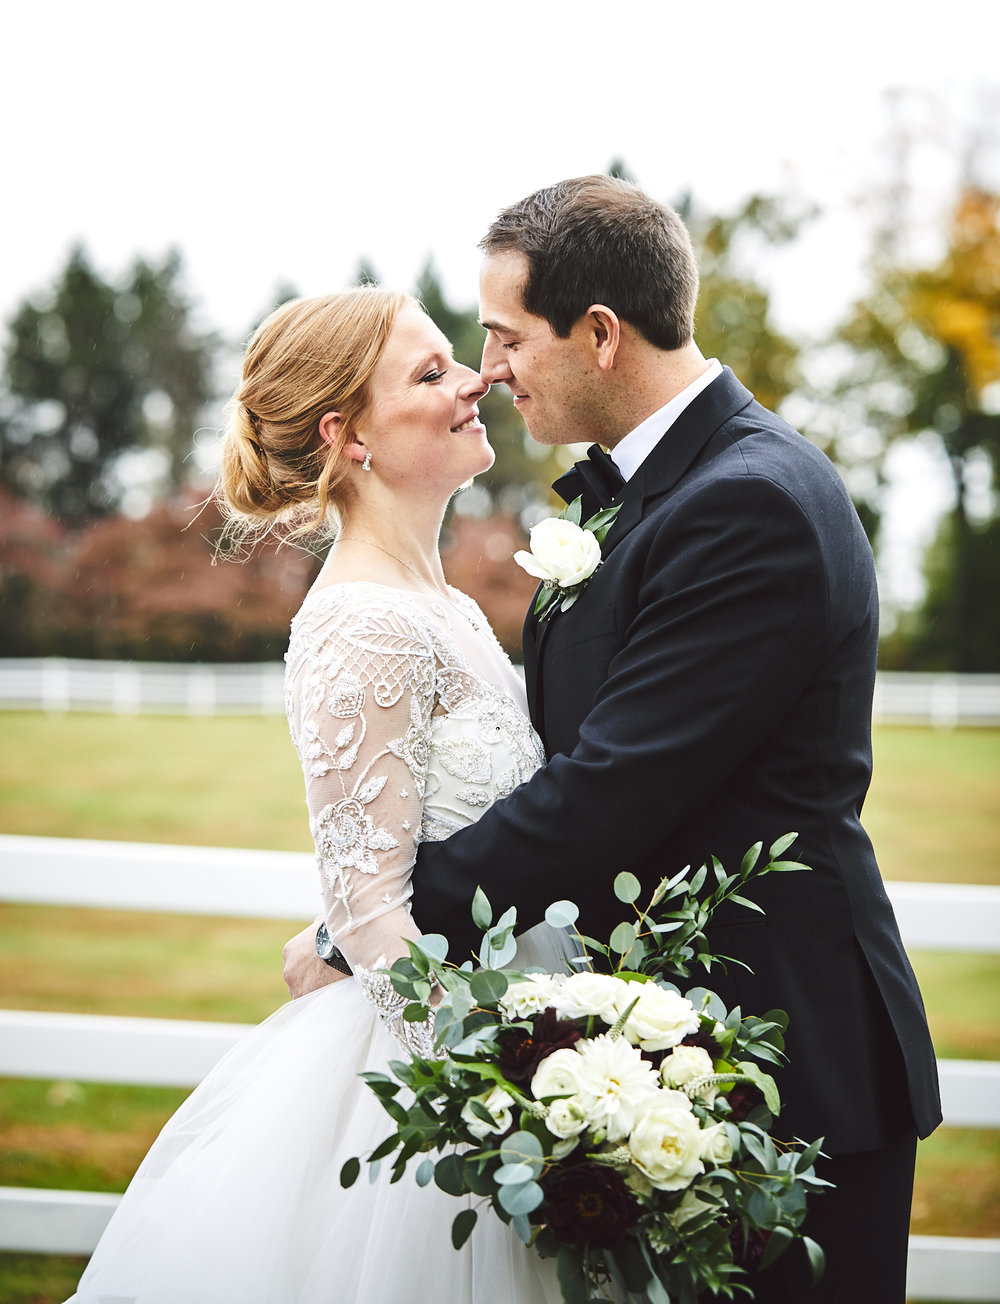 181027_TheRylandInnFallWeddingPhotography_NJWeddingPhotographer_By_BriJohnsonWeddings_0057.jpg